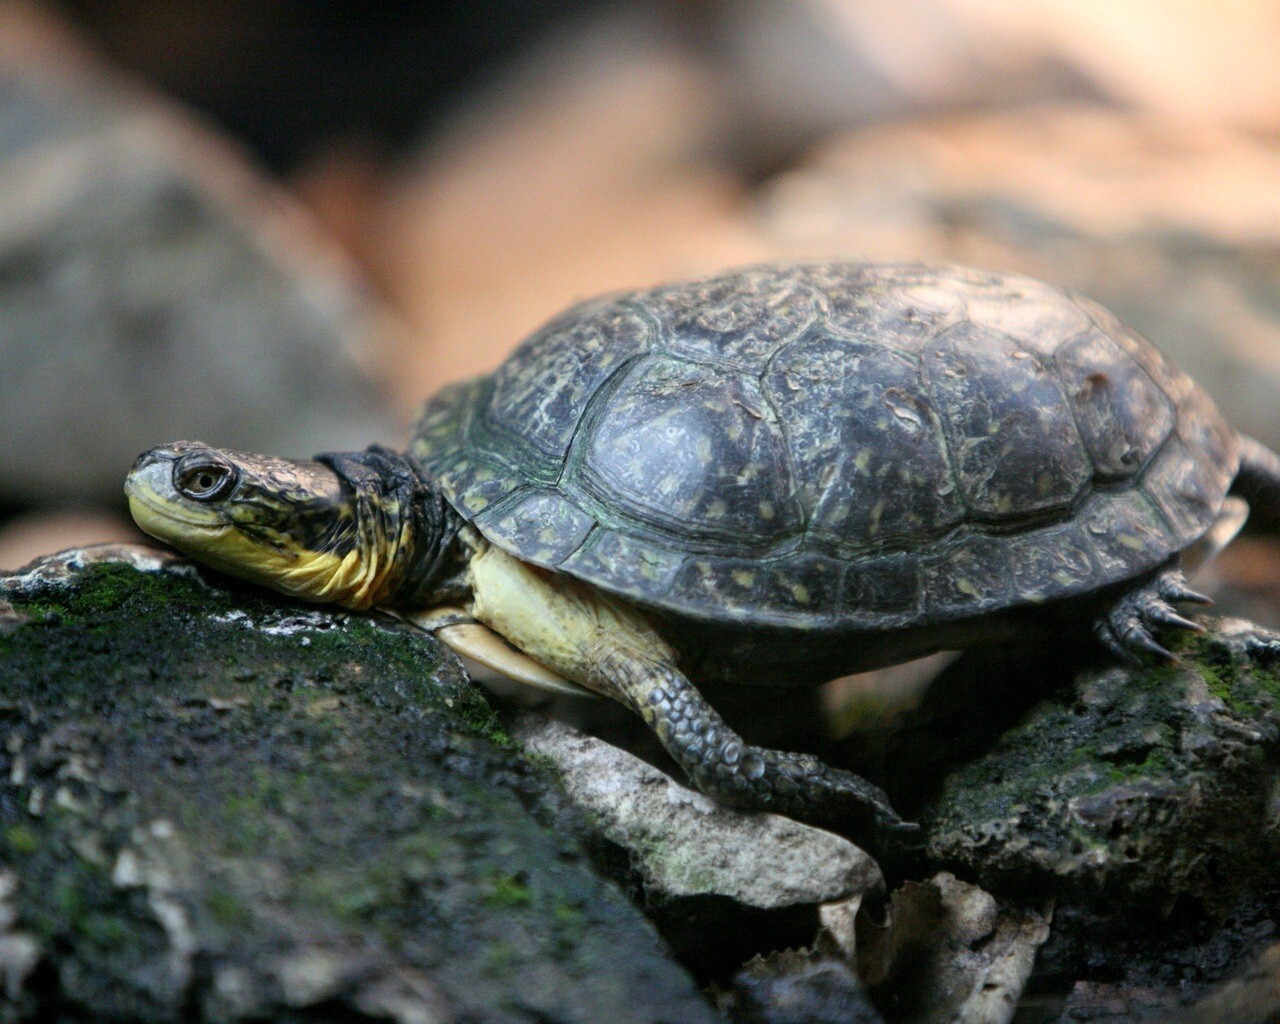 Baby turtle wallpapers pictures photos images pictures to pin on